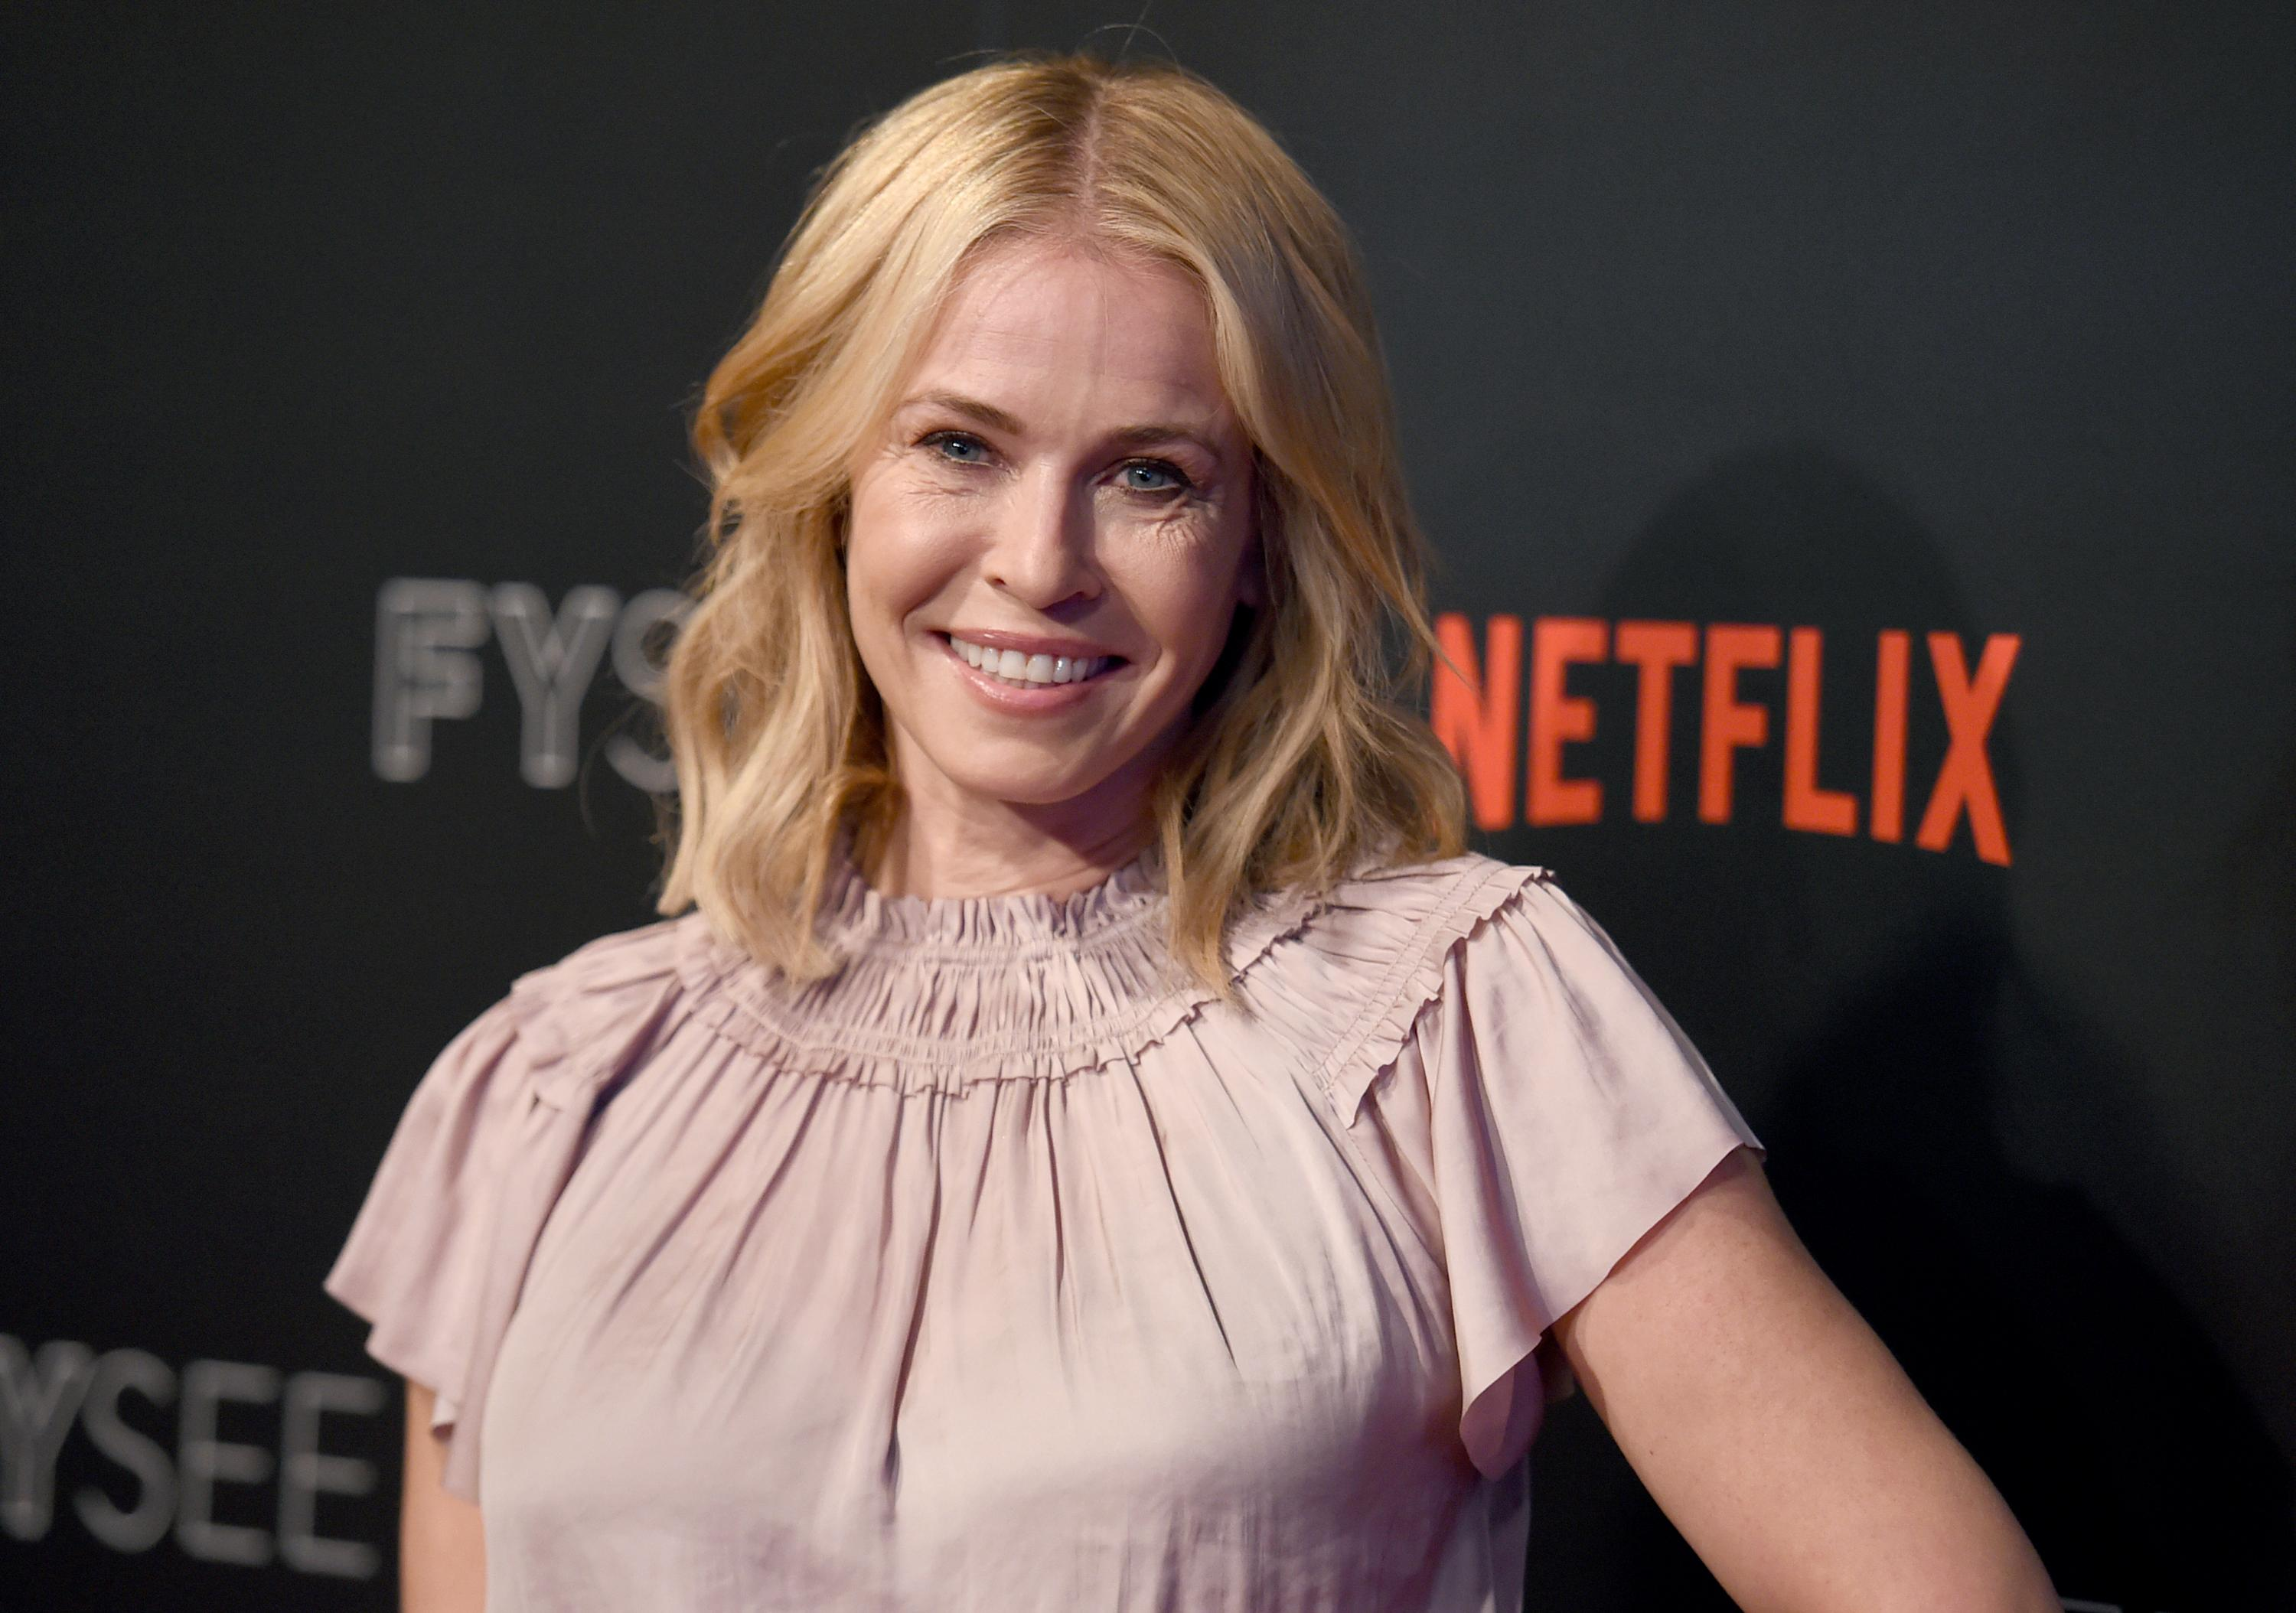 FILE - In this May 23, 2017, file photo, Chelsea Handler arrives at the Netflix Comedy Panel For Your Consideration Event at the Netflix FYSee Space in Beverly Hills, Calif. Handler announced on Oct. 18, 2017, that she is ending her Netflix talk show after two seasons in order to focus on political activism. (Photo by Richard Shotwell/Invision/AP, File)